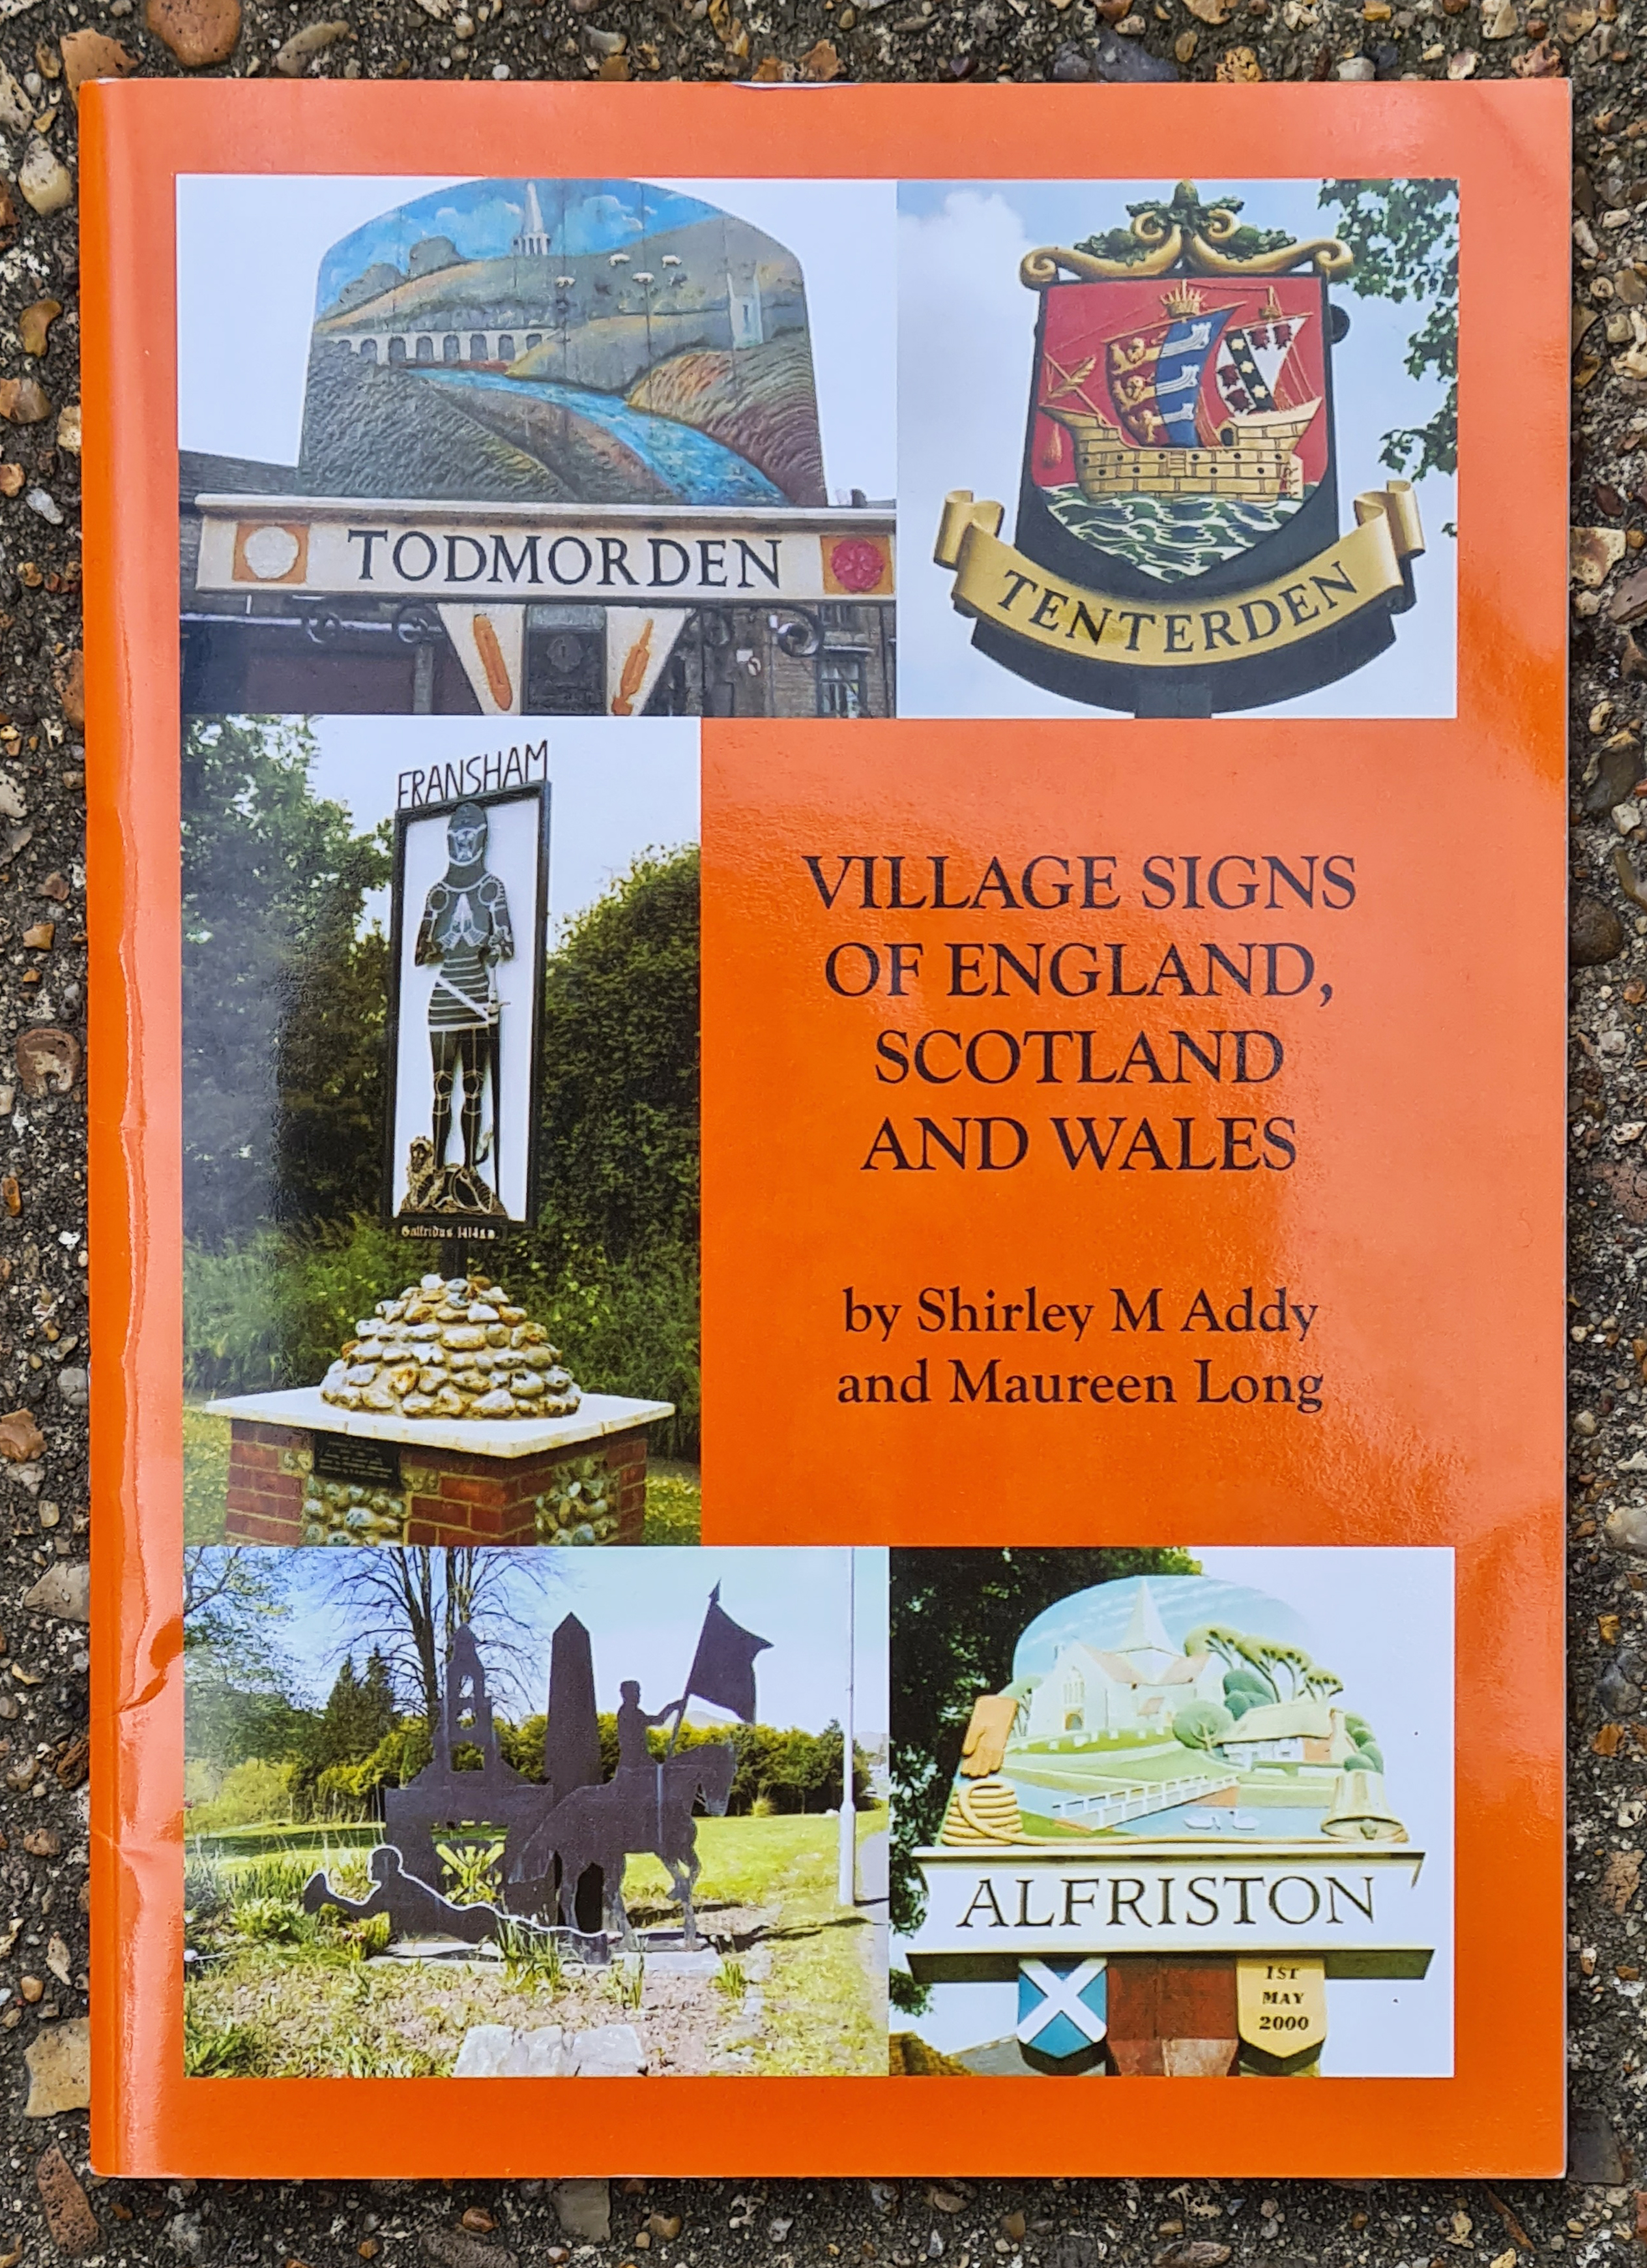 Published in 2009, Village Signs of England, Scotland and Wales works well as an introduction to the subject